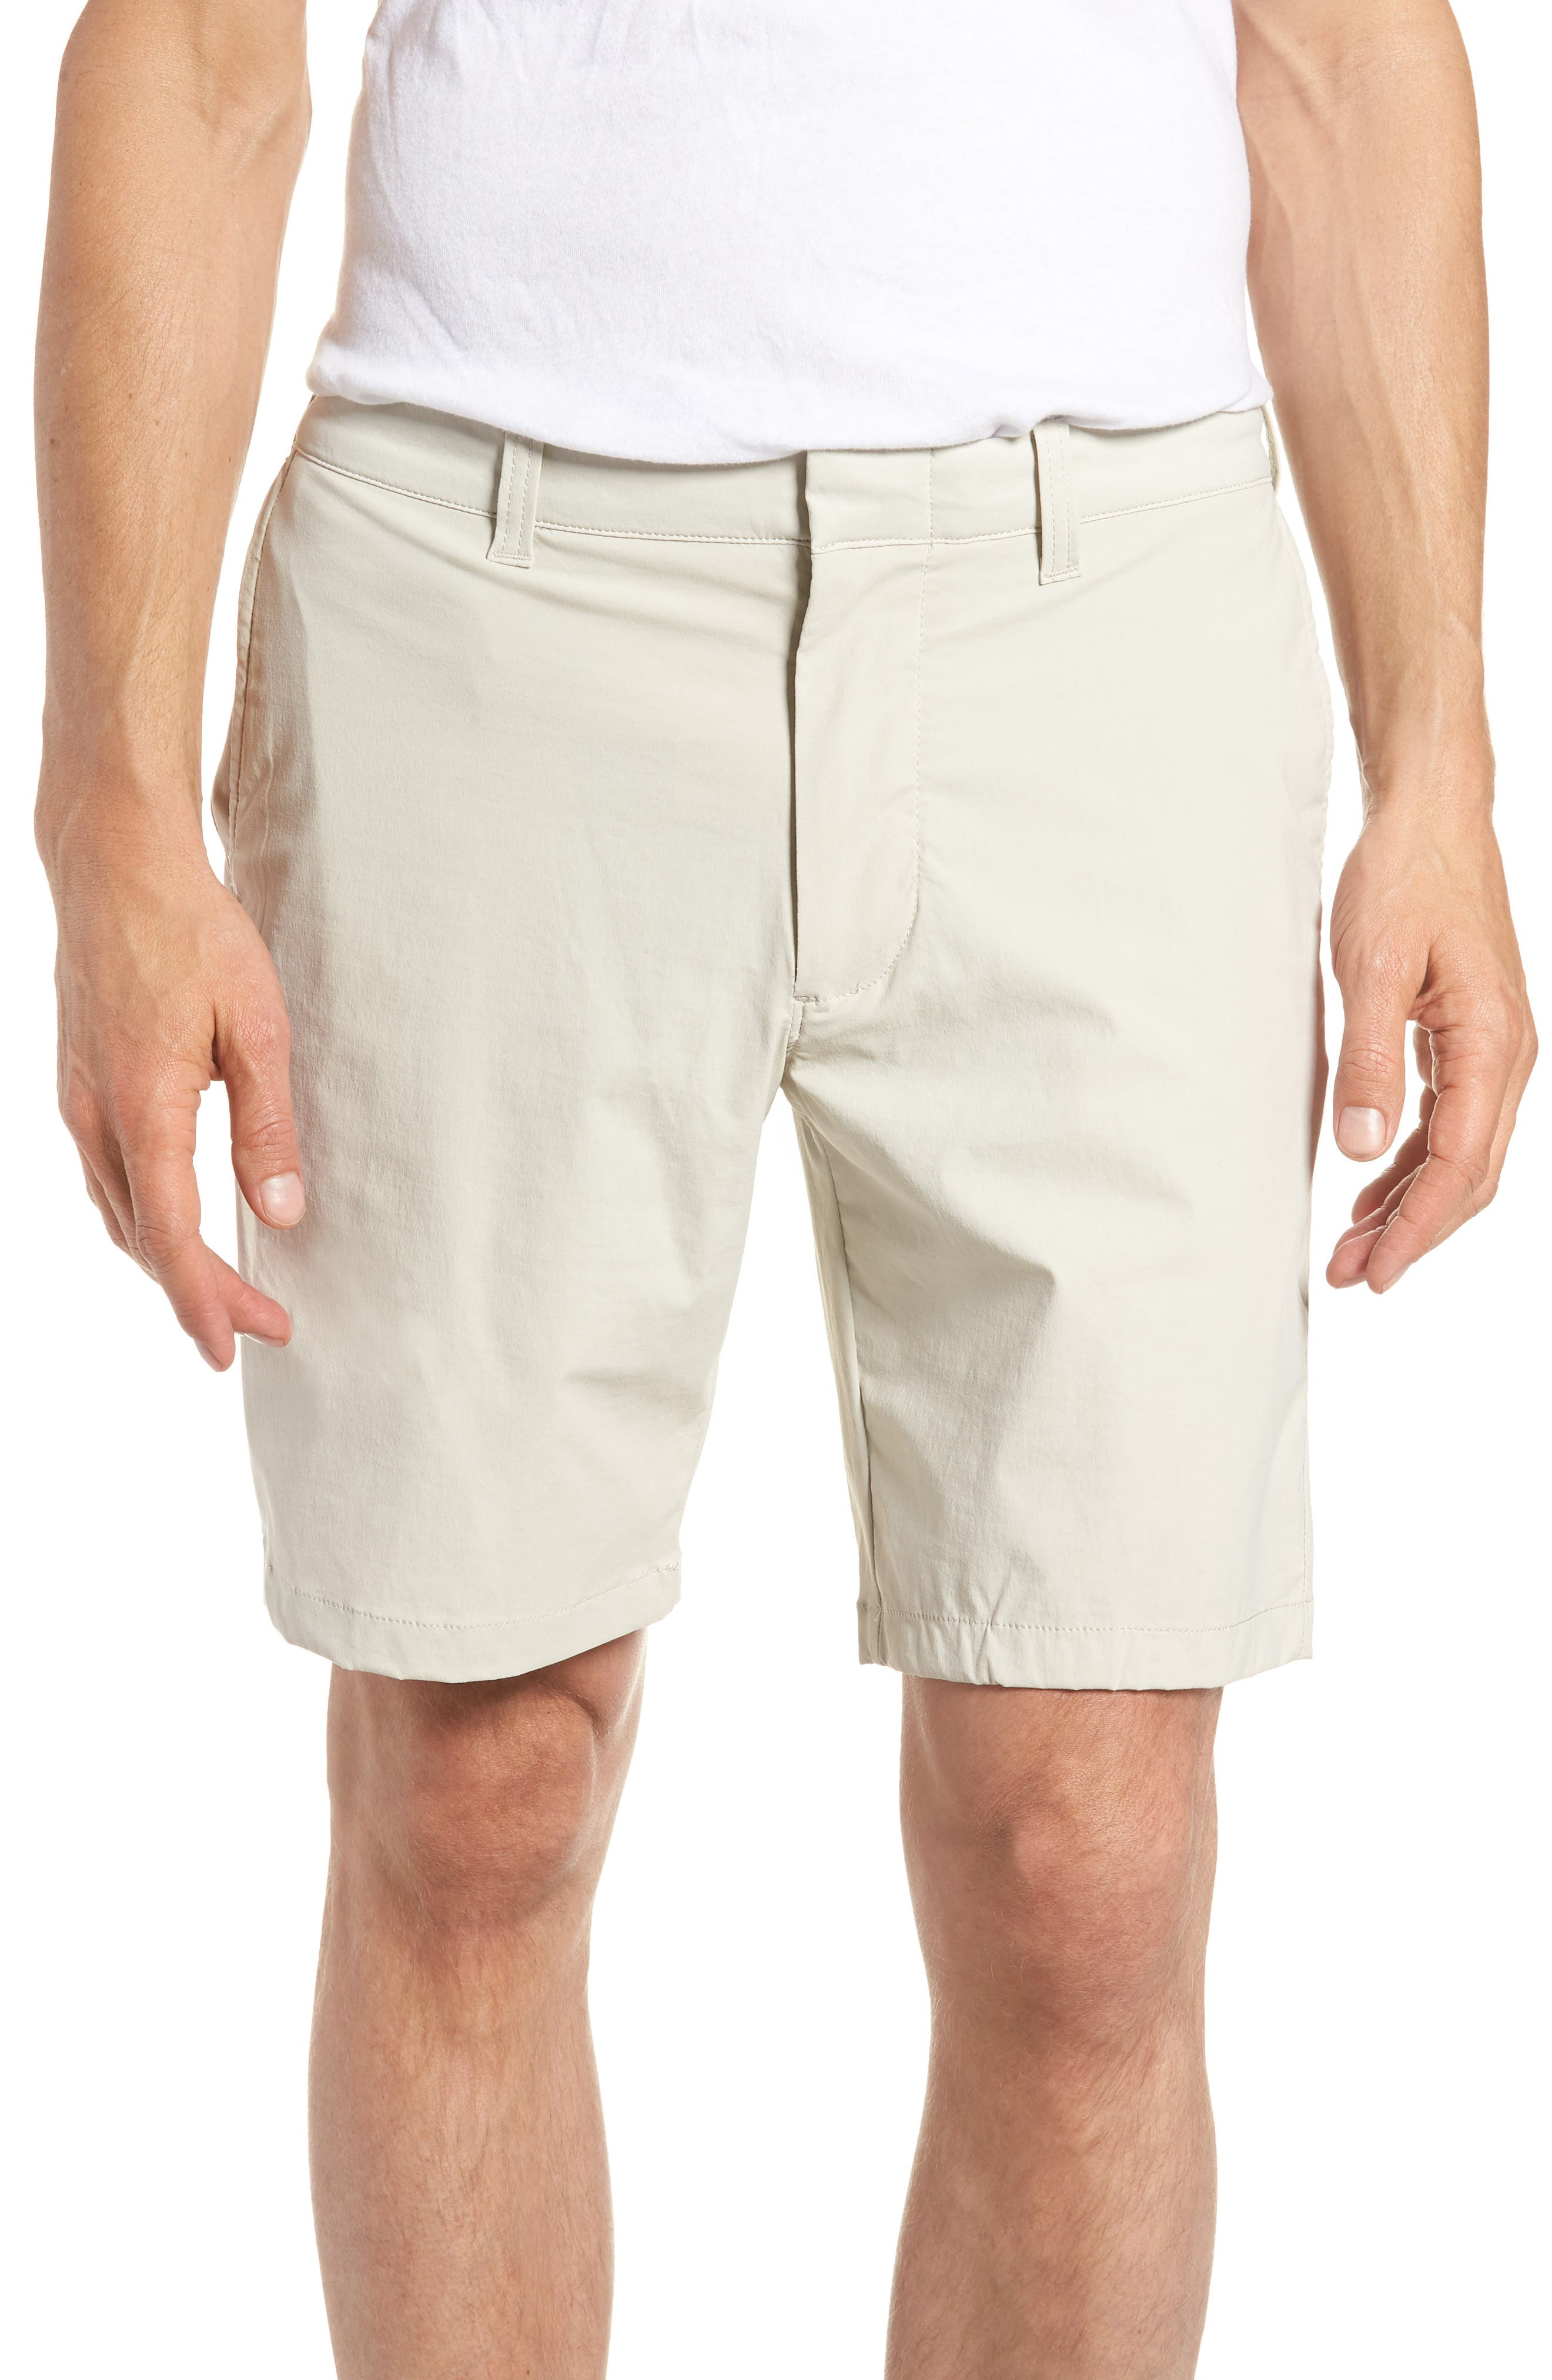 Tech Shorts,                         Main,                         color, Stone